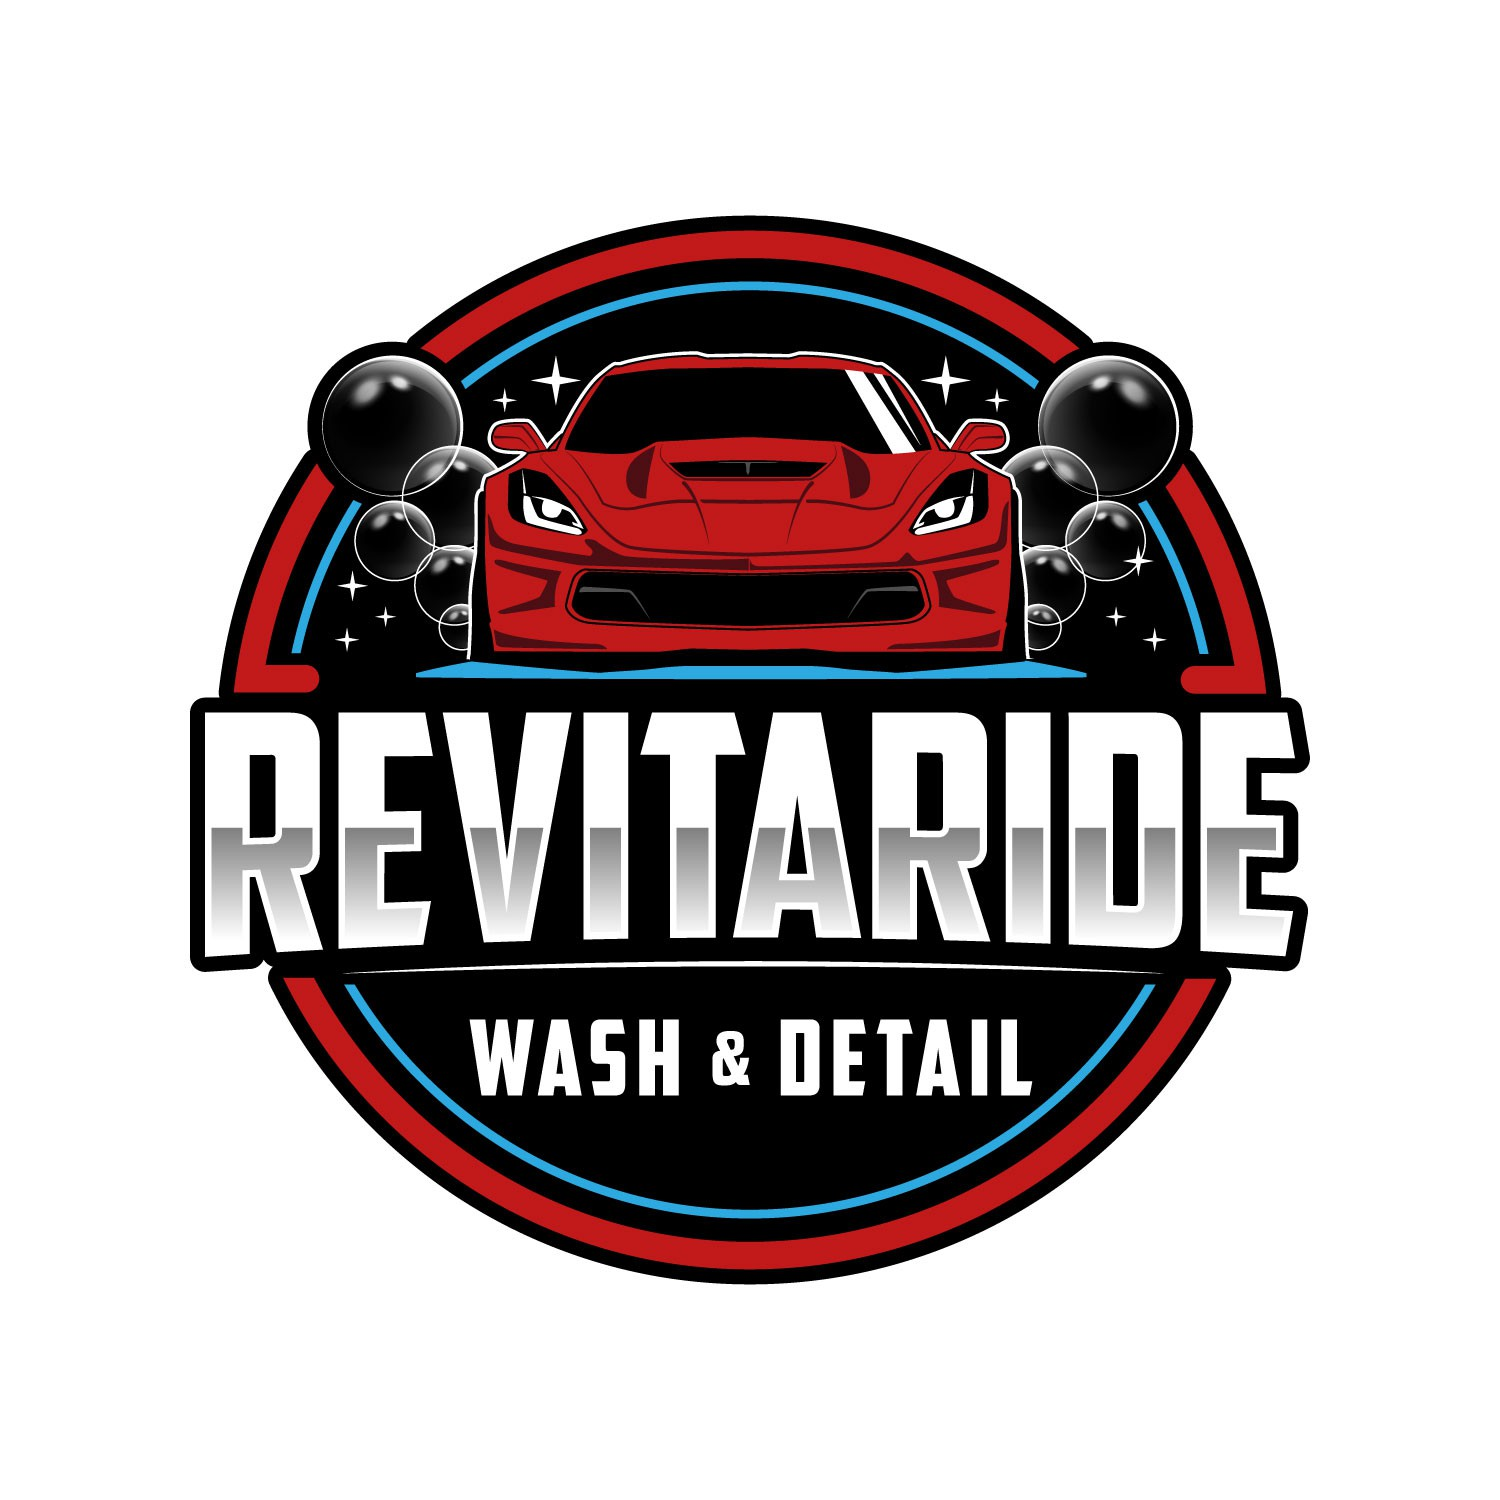 Clever logo for Car wash and detail business!